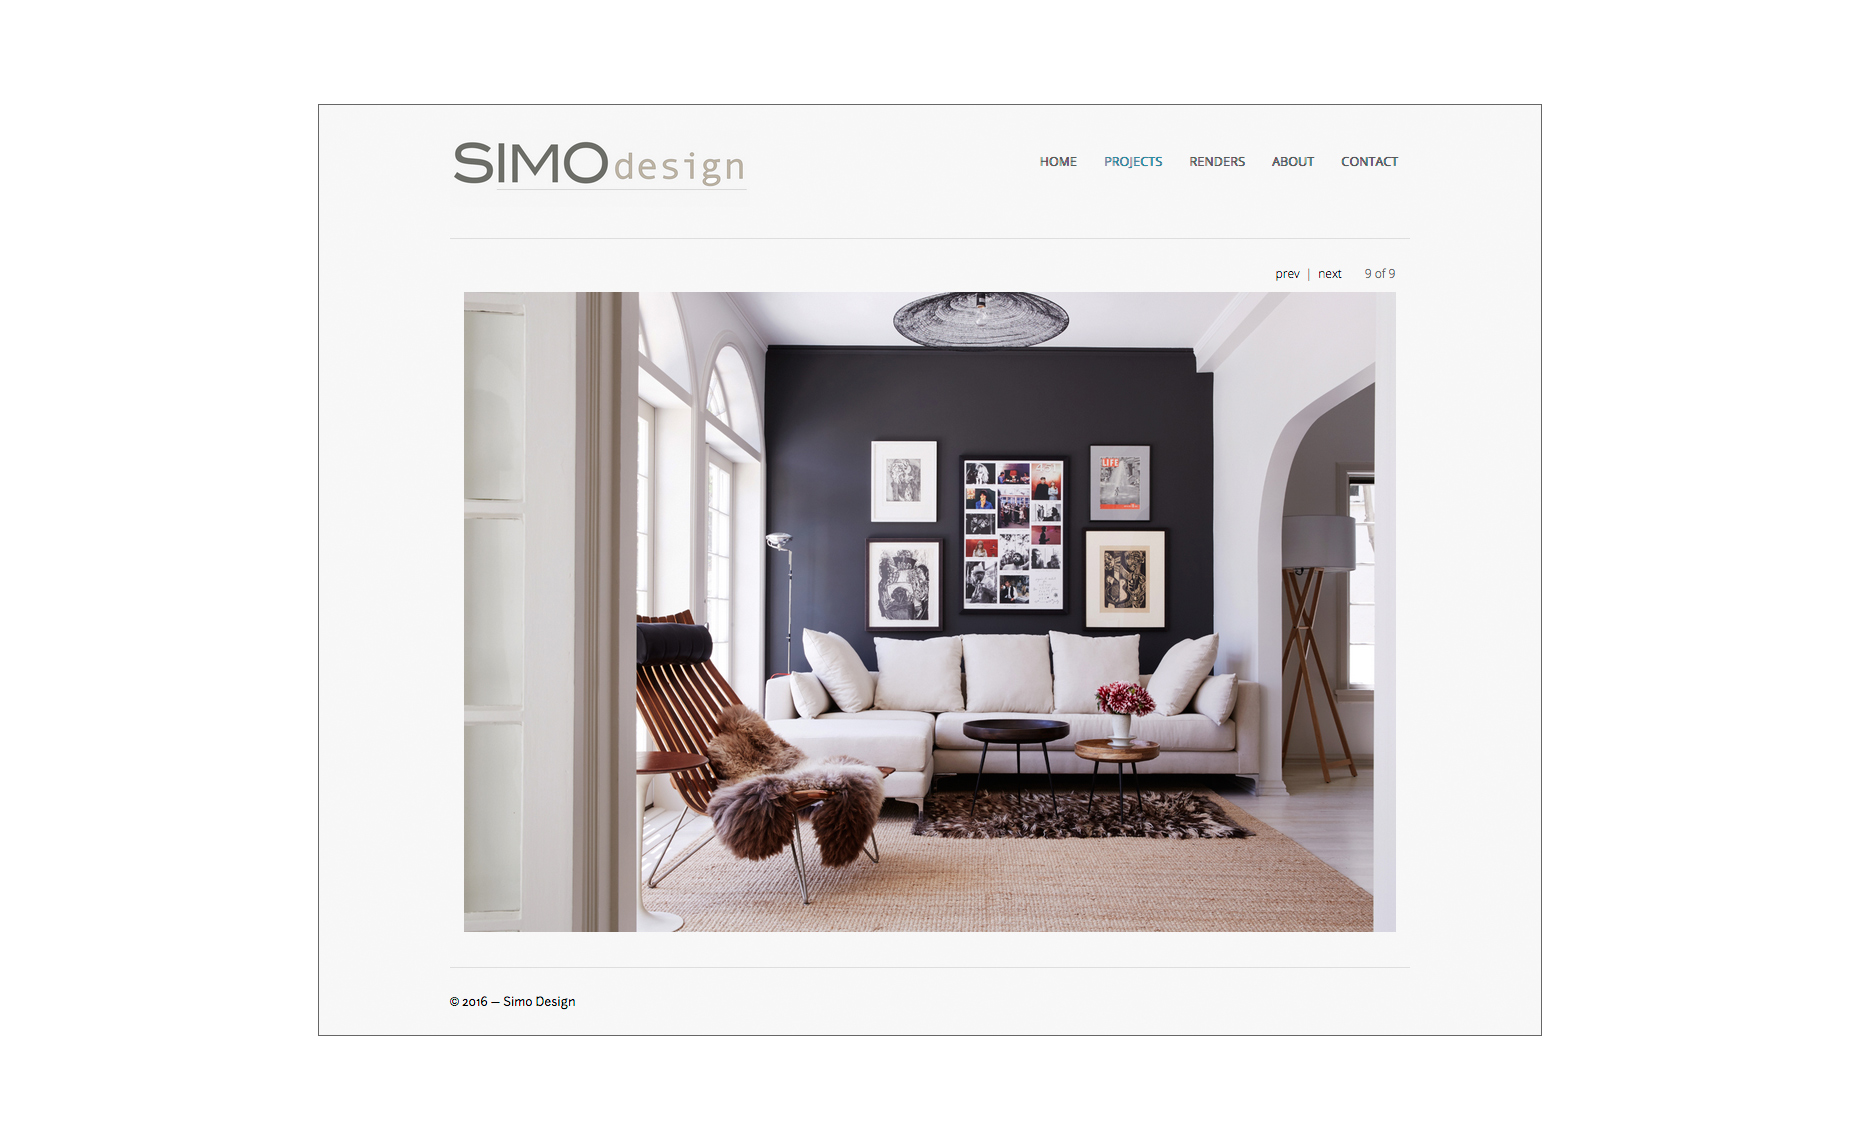 simodesign_web-2